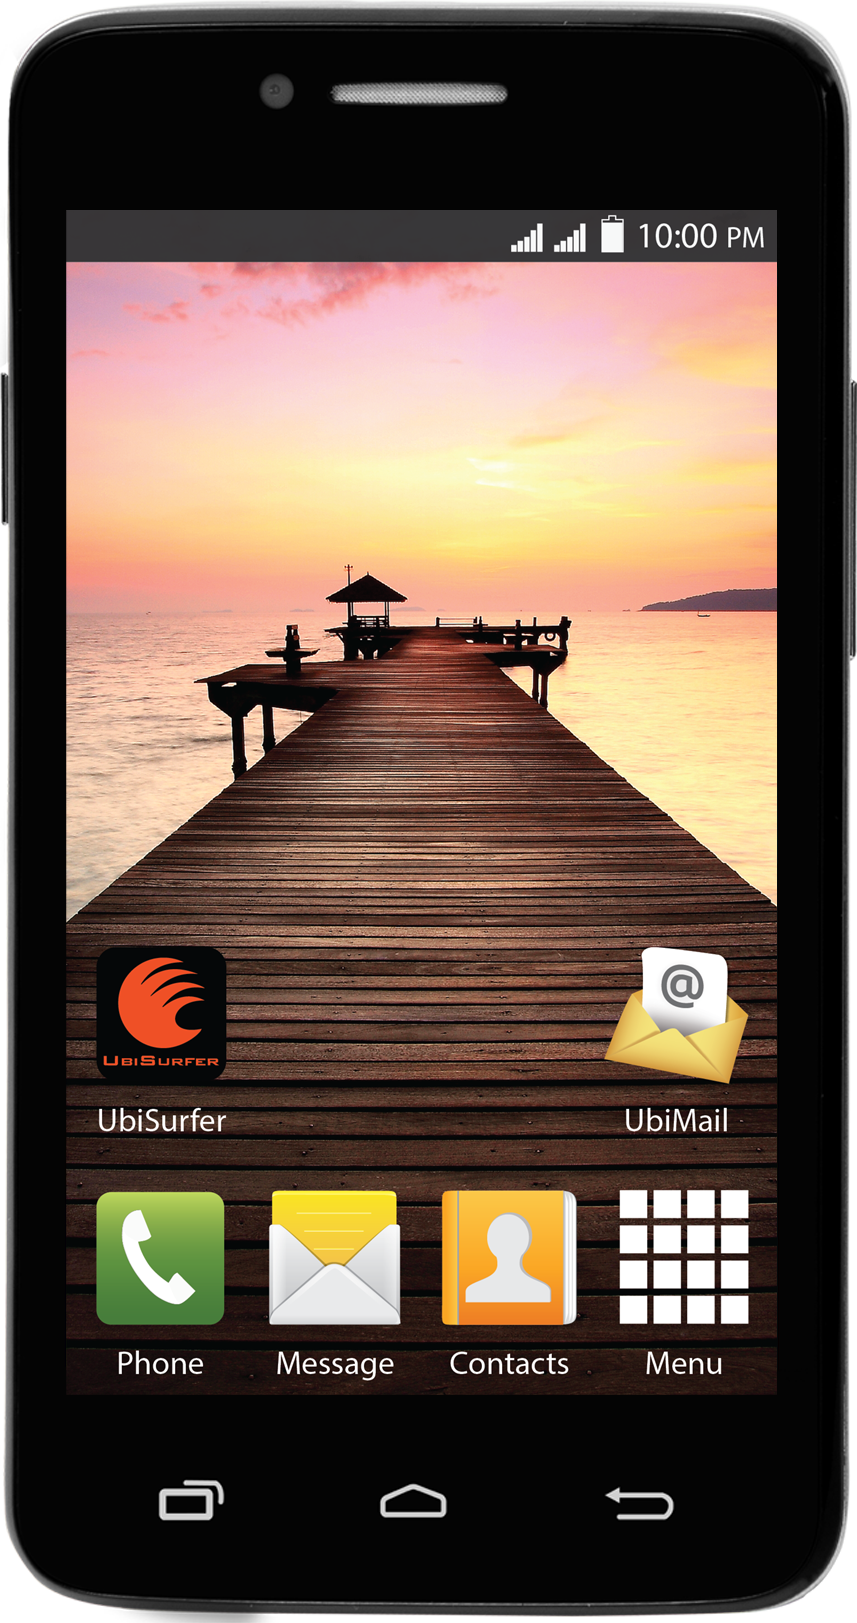 datawind launches two new pocketsurfer smartphones in india